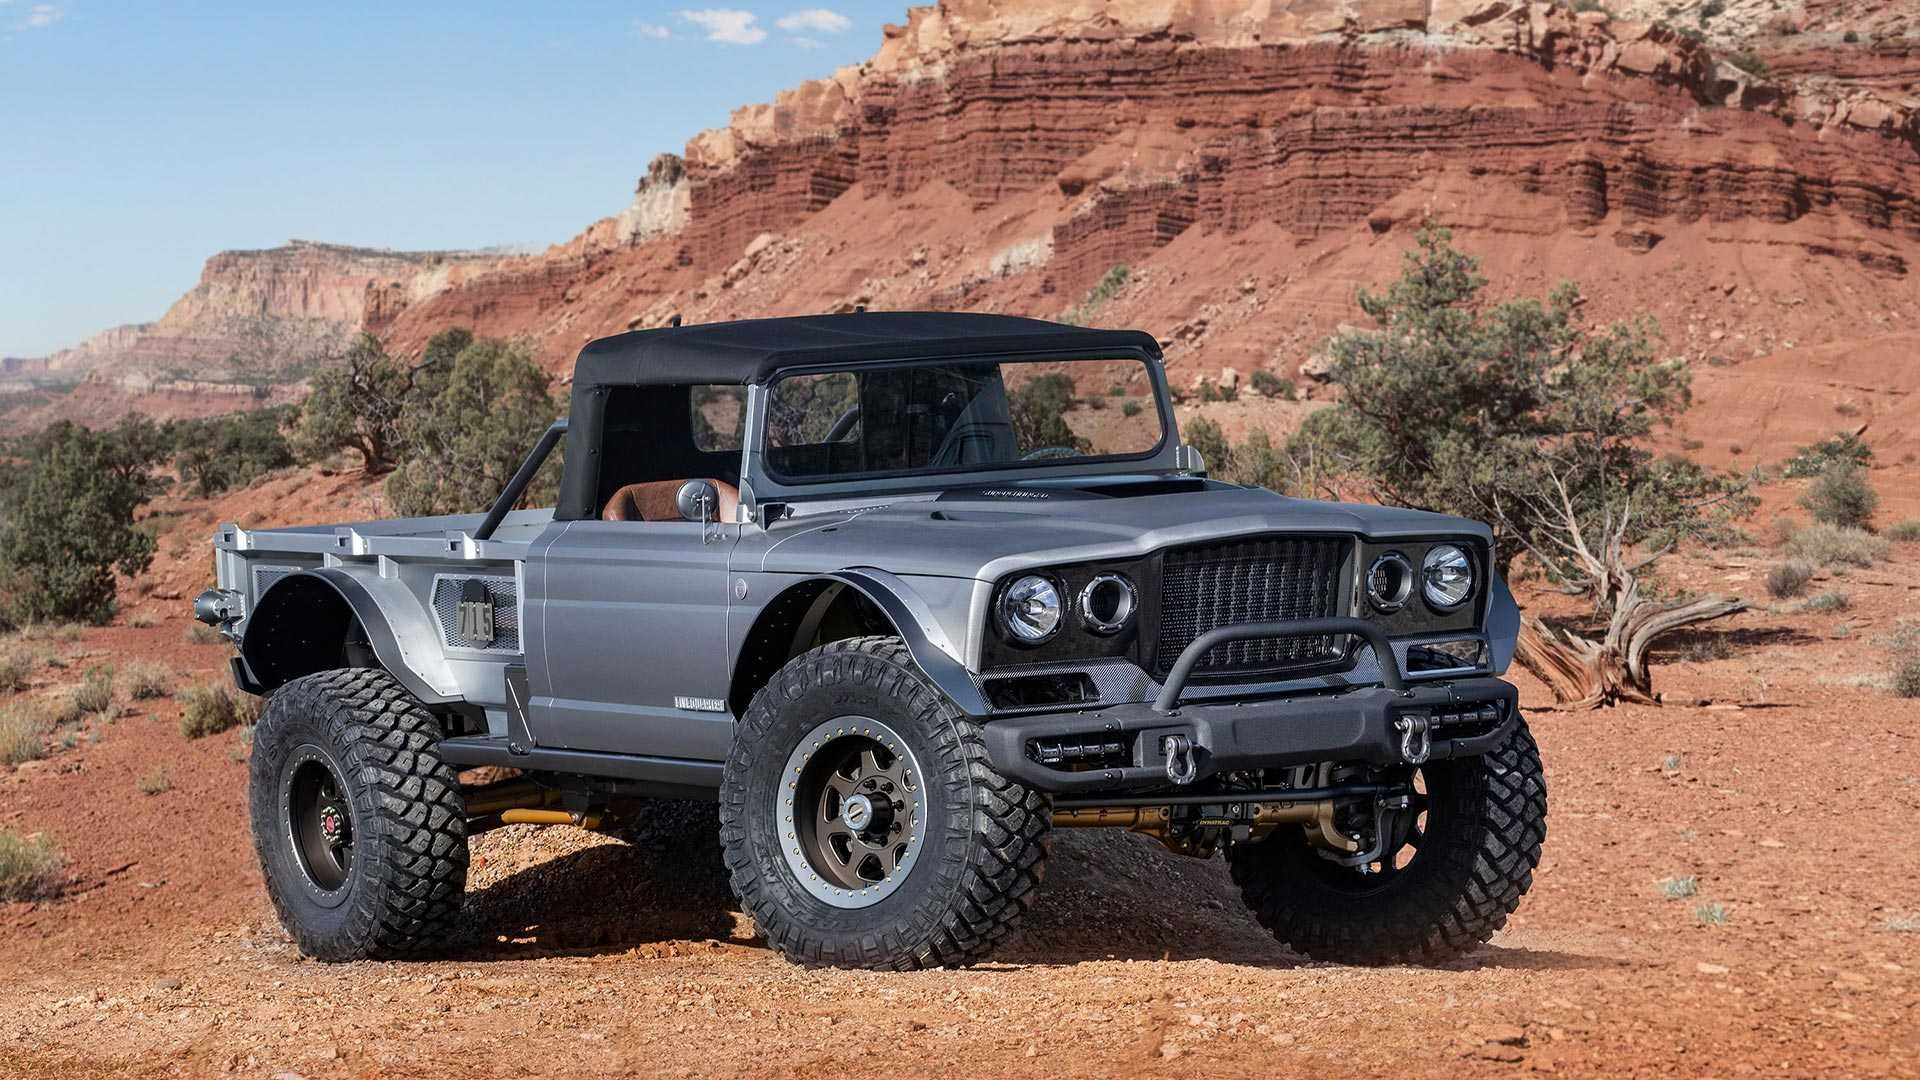 Jeep Gladiator M715 Five Quarter Is A 700hp Monster Truck Jeep